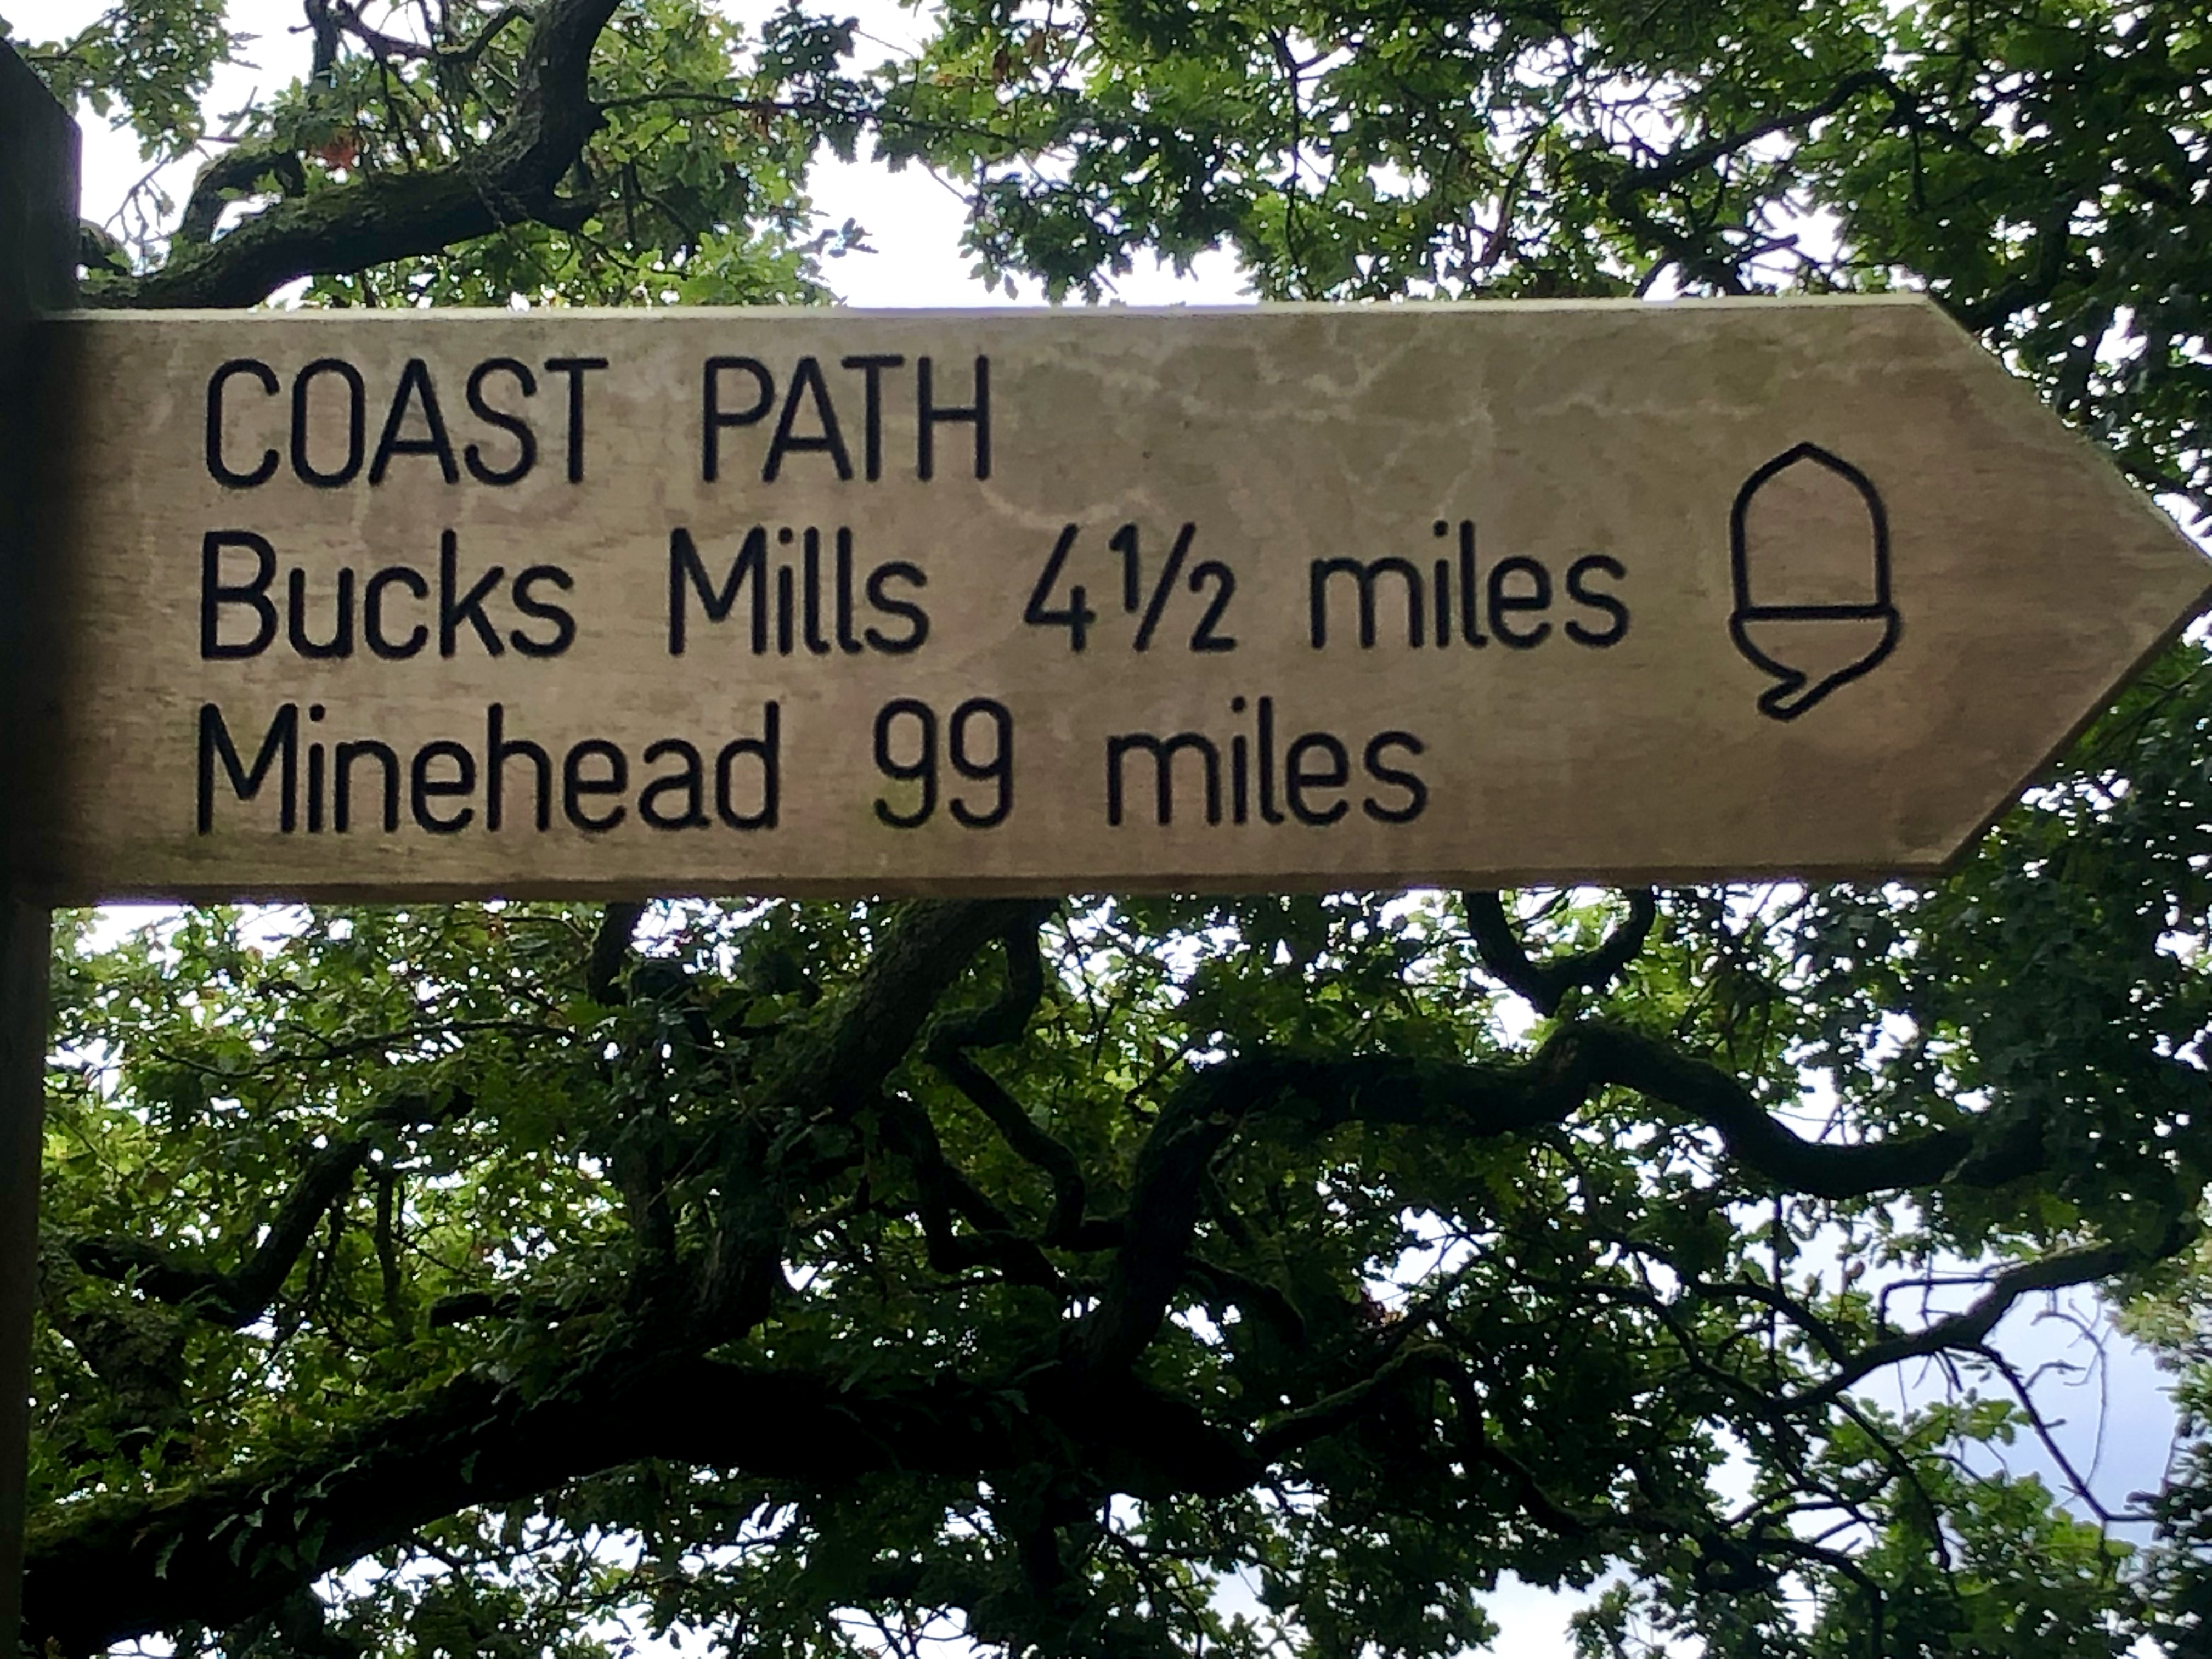 The South West Coast Path mile marker shows that we've ticked off almost 100 miles of our epic journey to walk the entire pathe